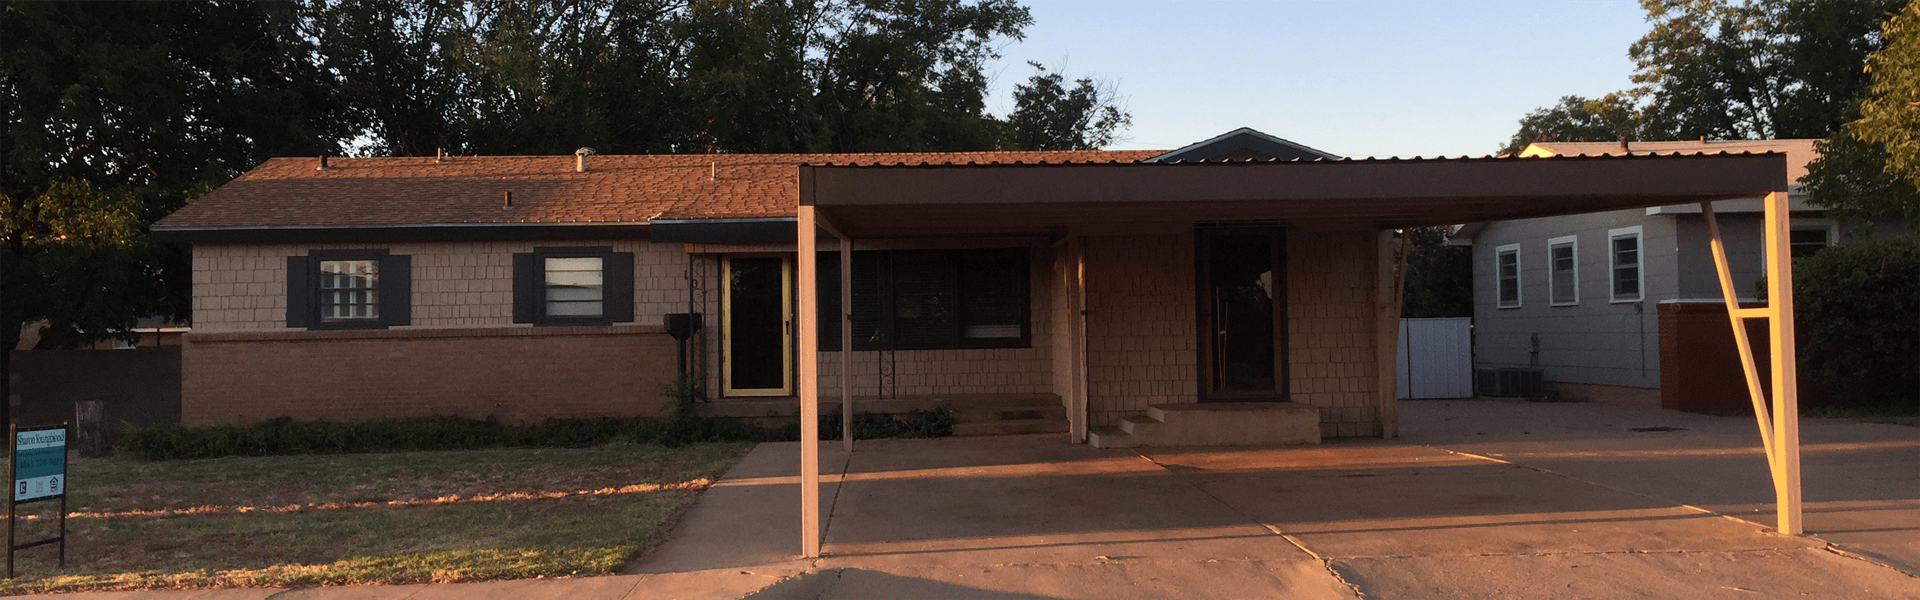 Lamesa Tx Home for sale